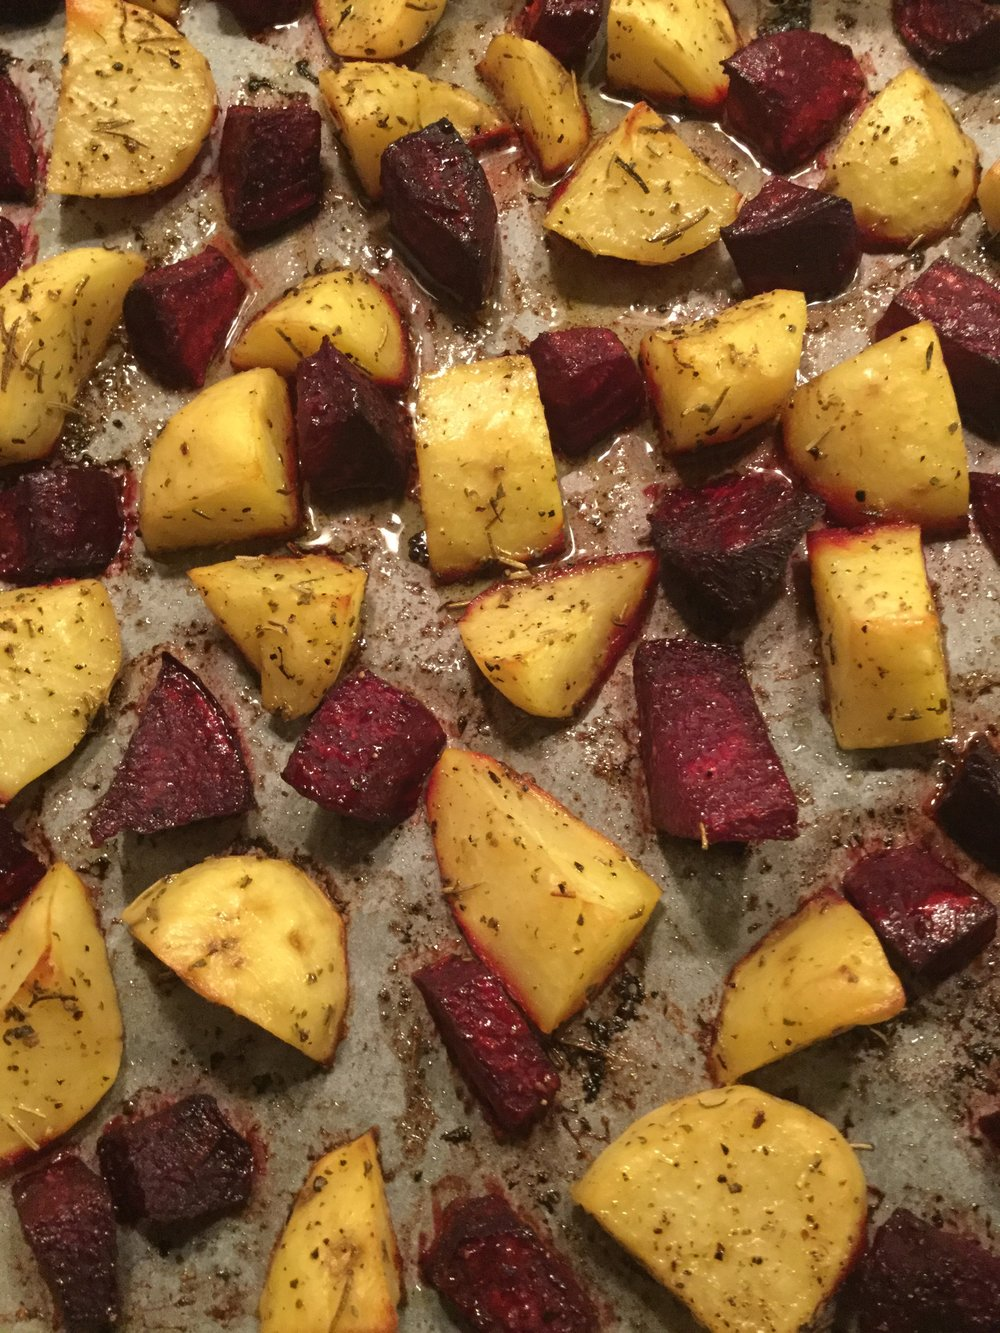 Oven roasted potatoes and beets from our garden